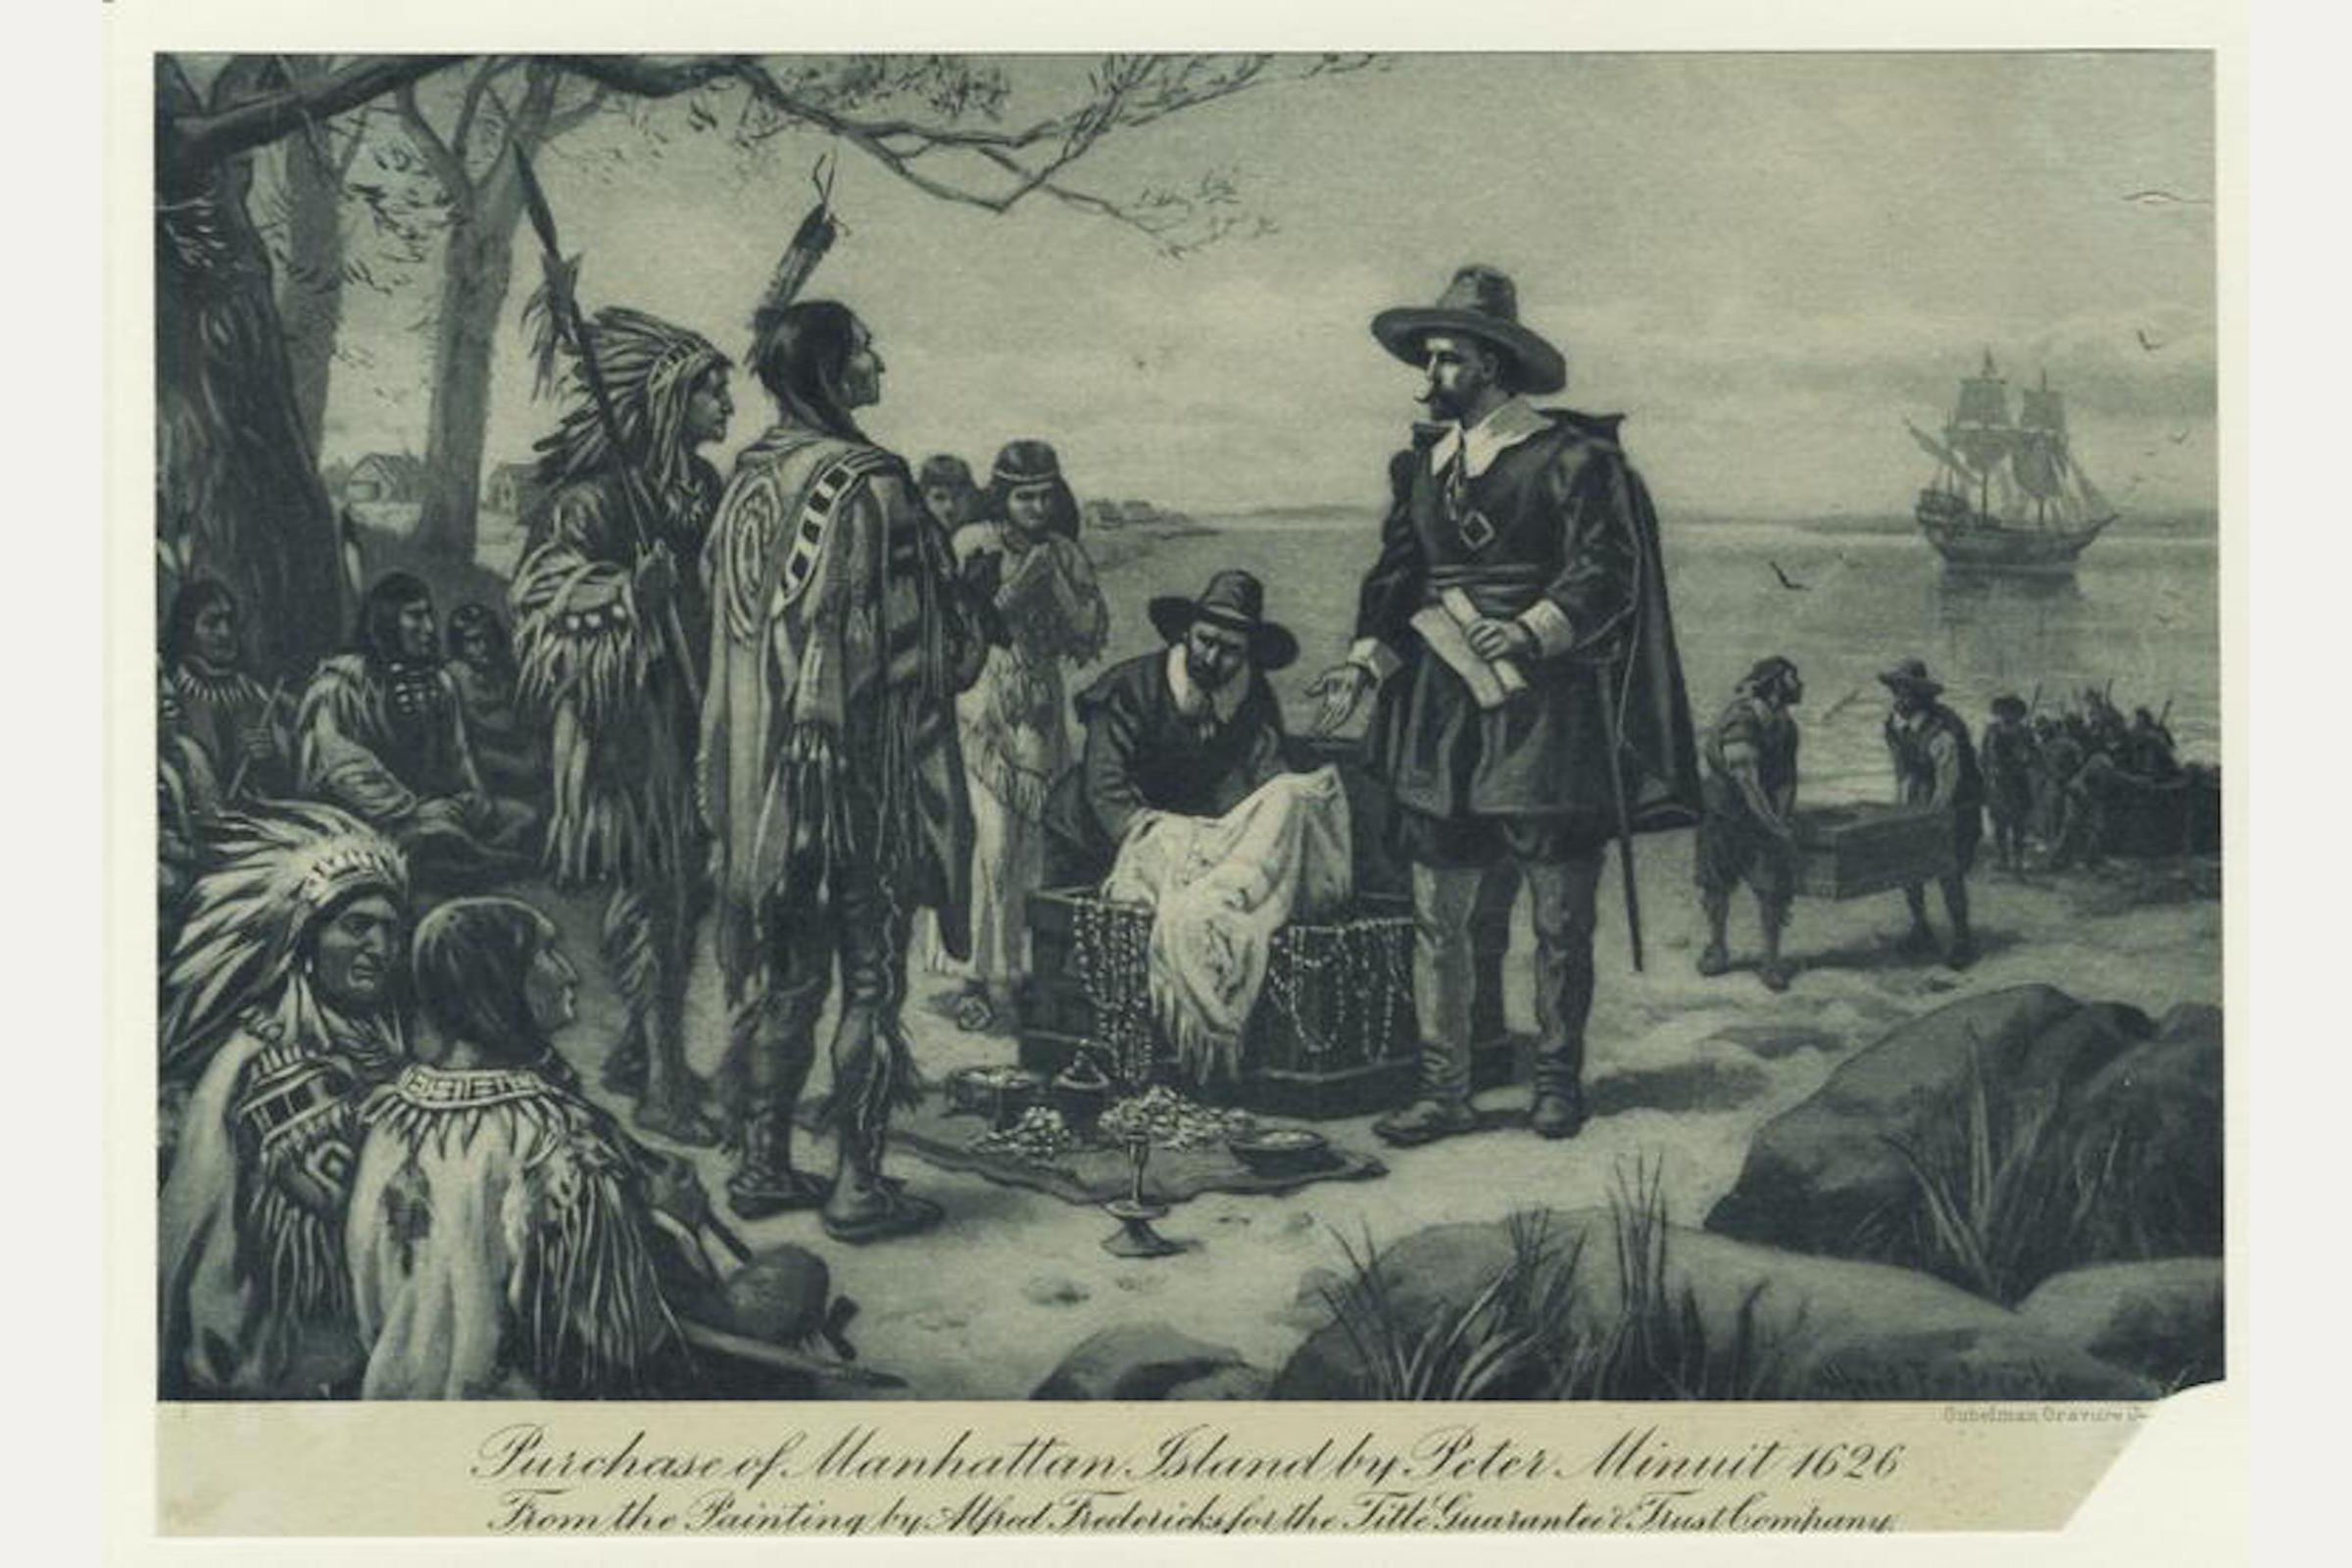 Drawing of Peter Minuit purchasing the island of Manhattan from the Lenape tribe